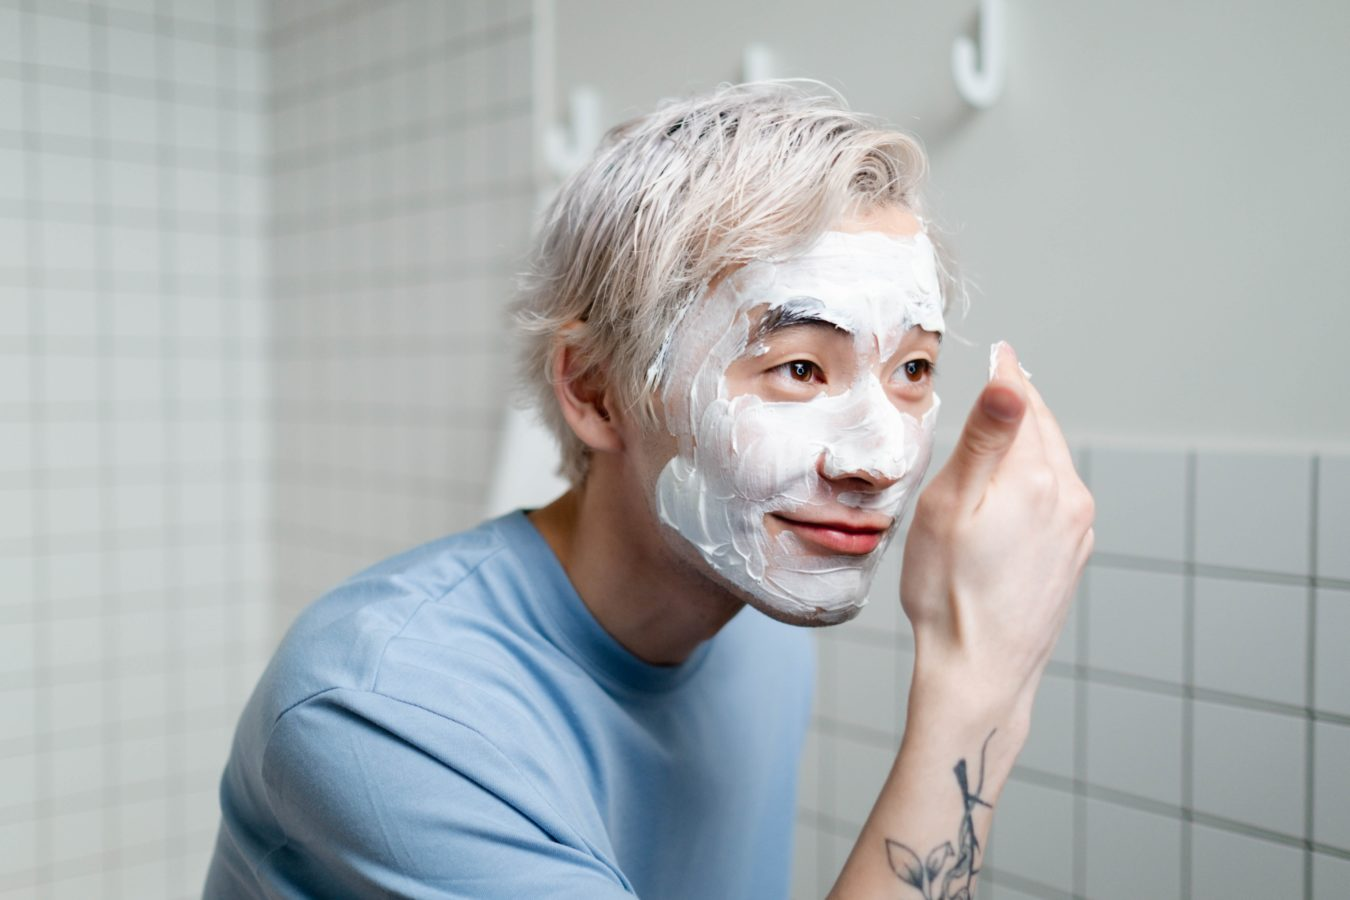 An 8-step skincare routine for well-groomed men